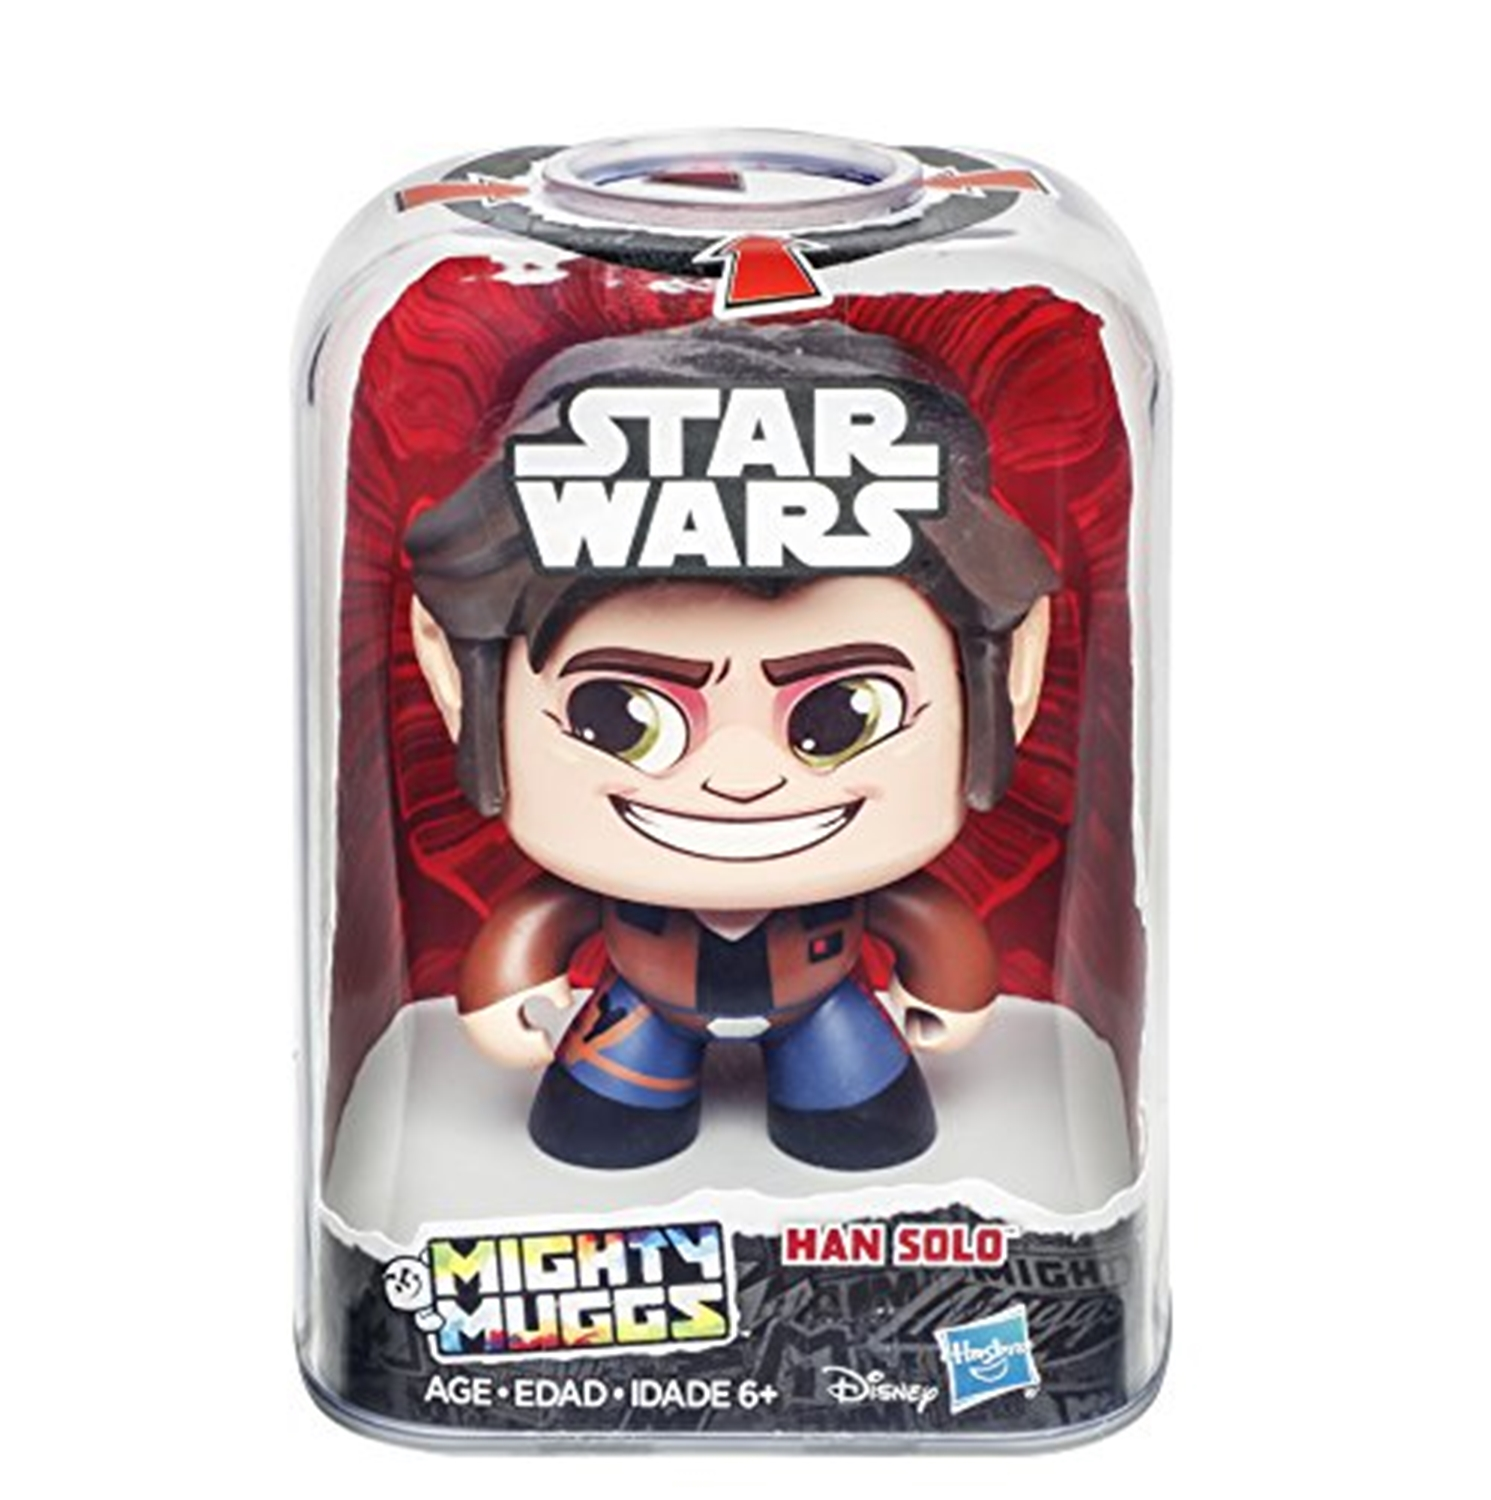 STAR WARS MIGHTY MUGGS HAN SOLO (10)